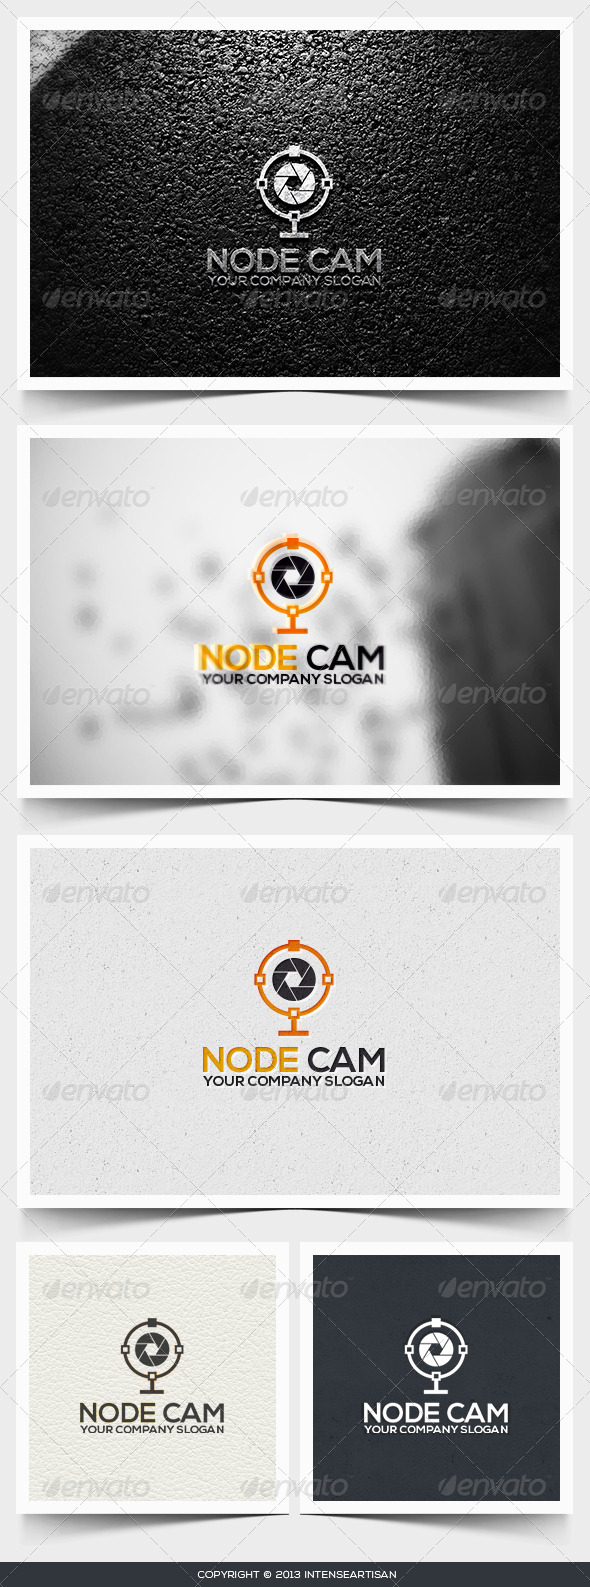 Node Cam Logo Template - Objects Logo Templates